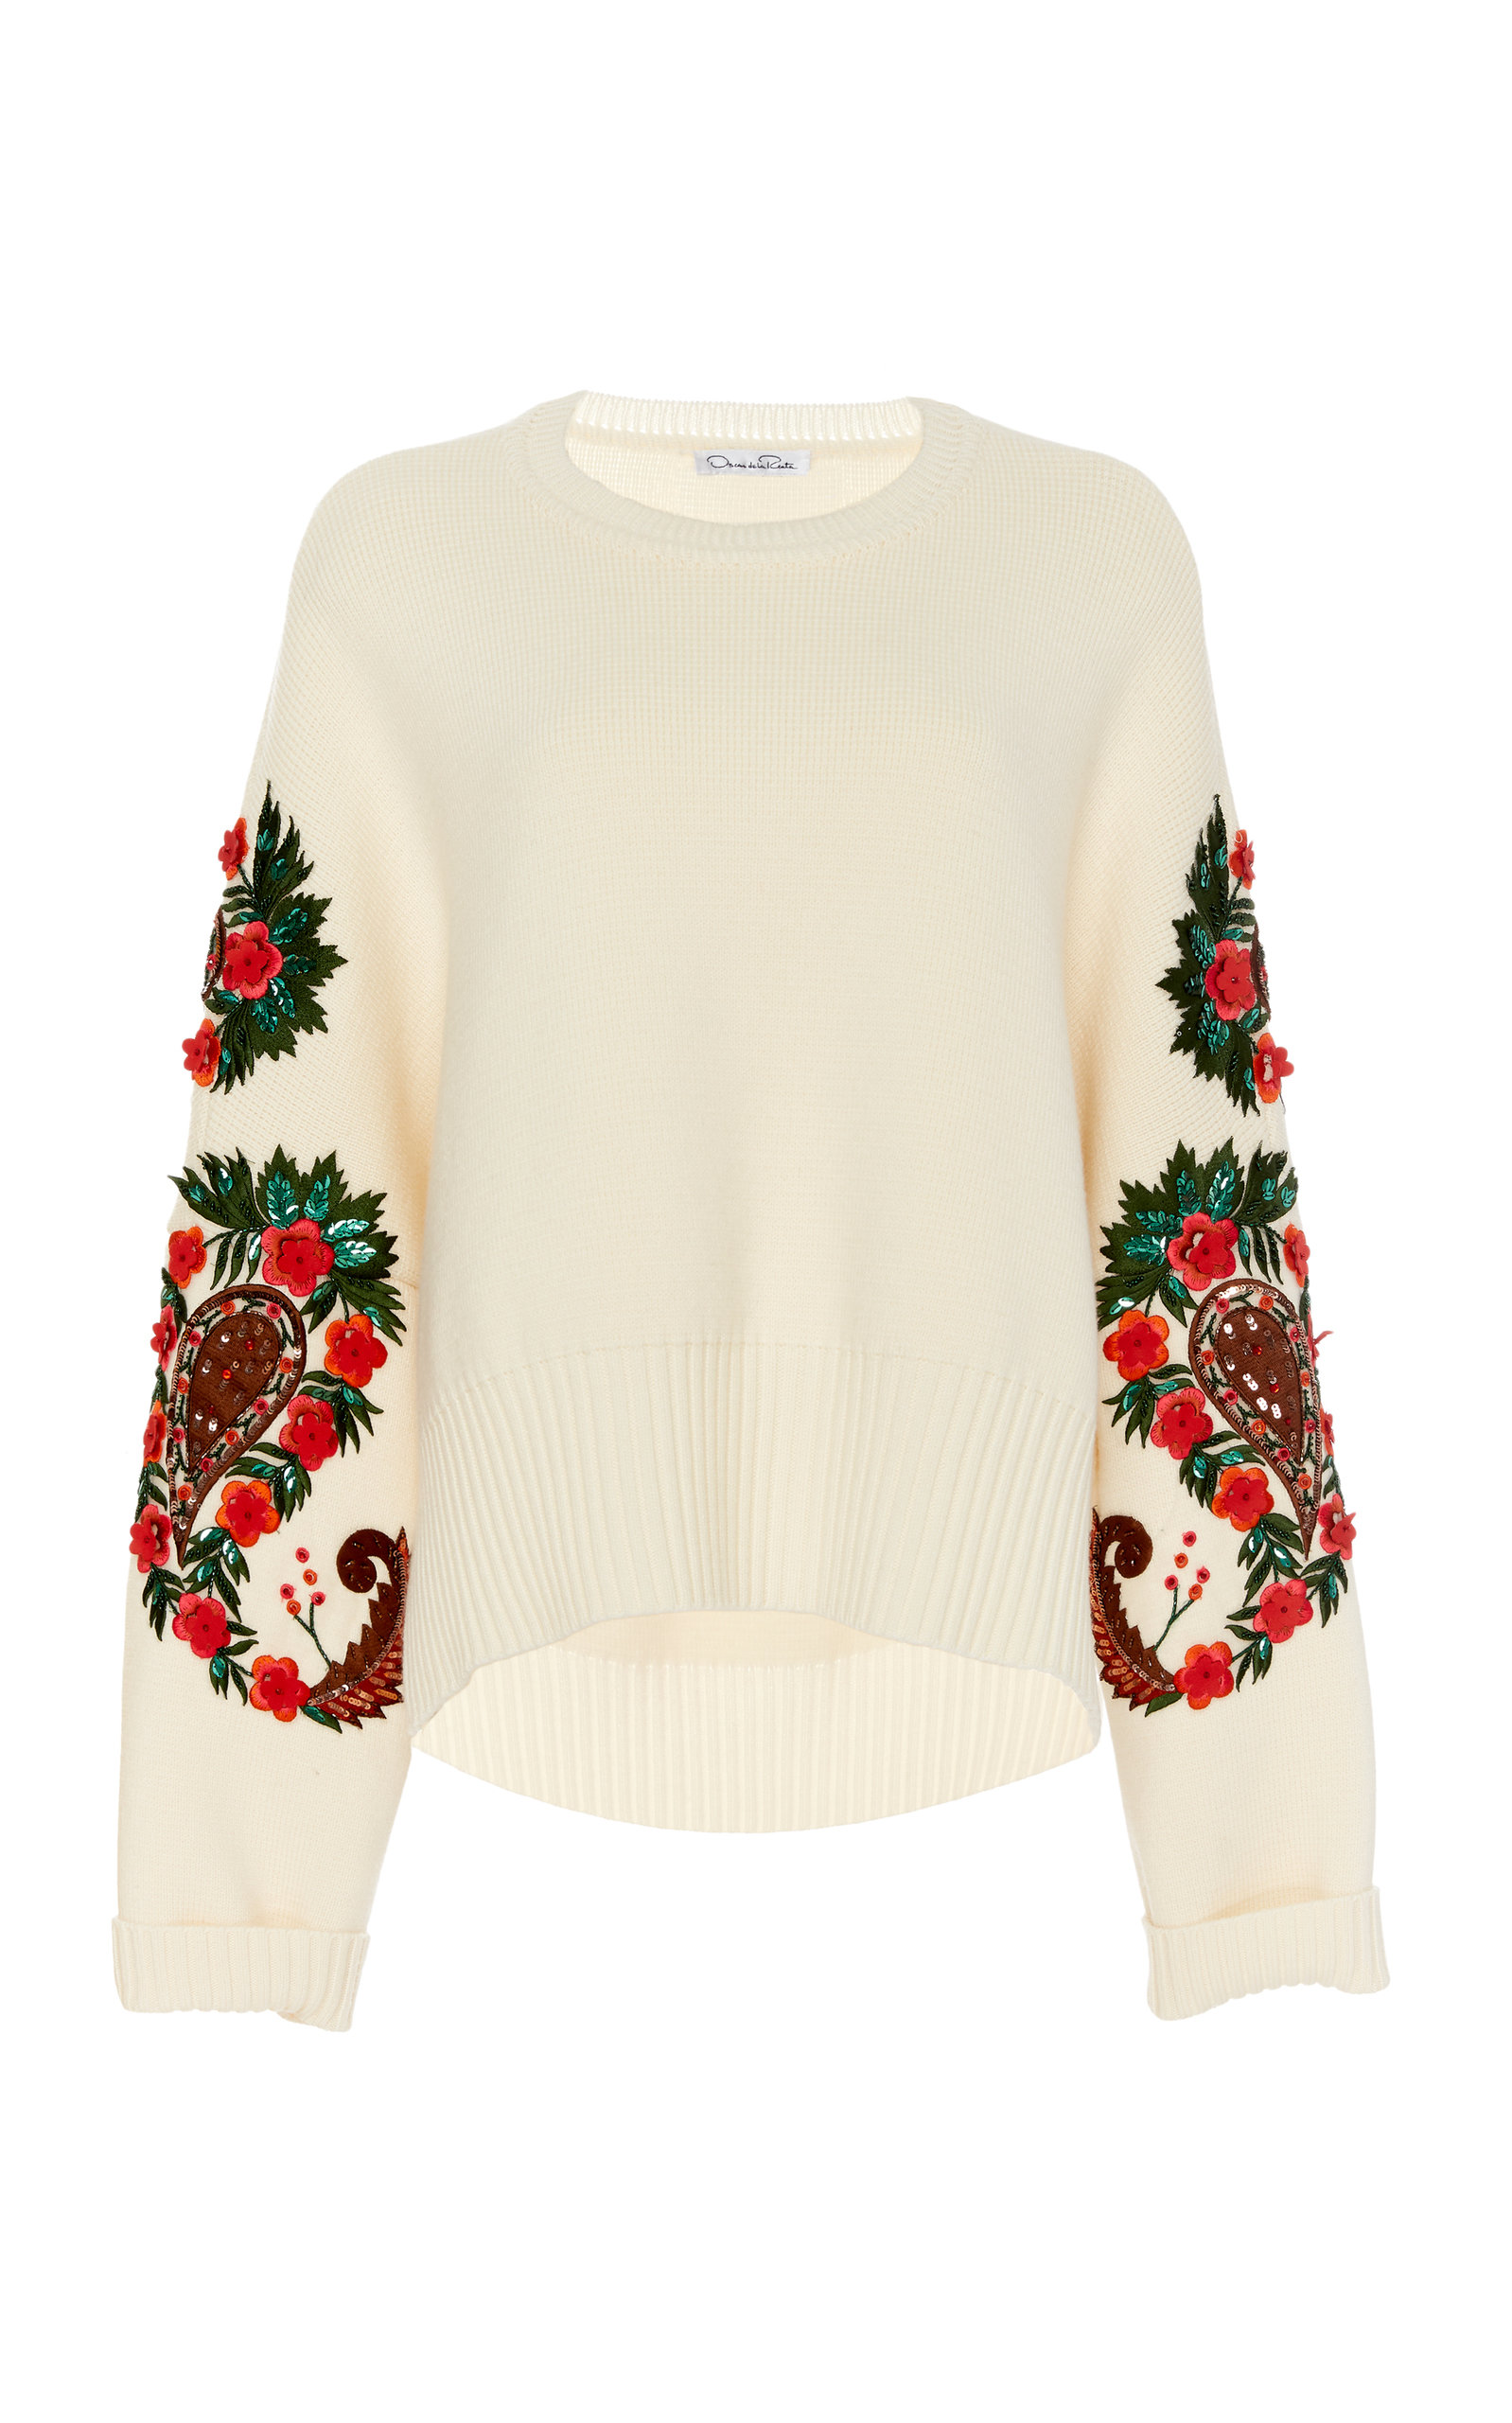 Oscar De La Renta FLORAL-EMBROIDERED WOOL SWEATER